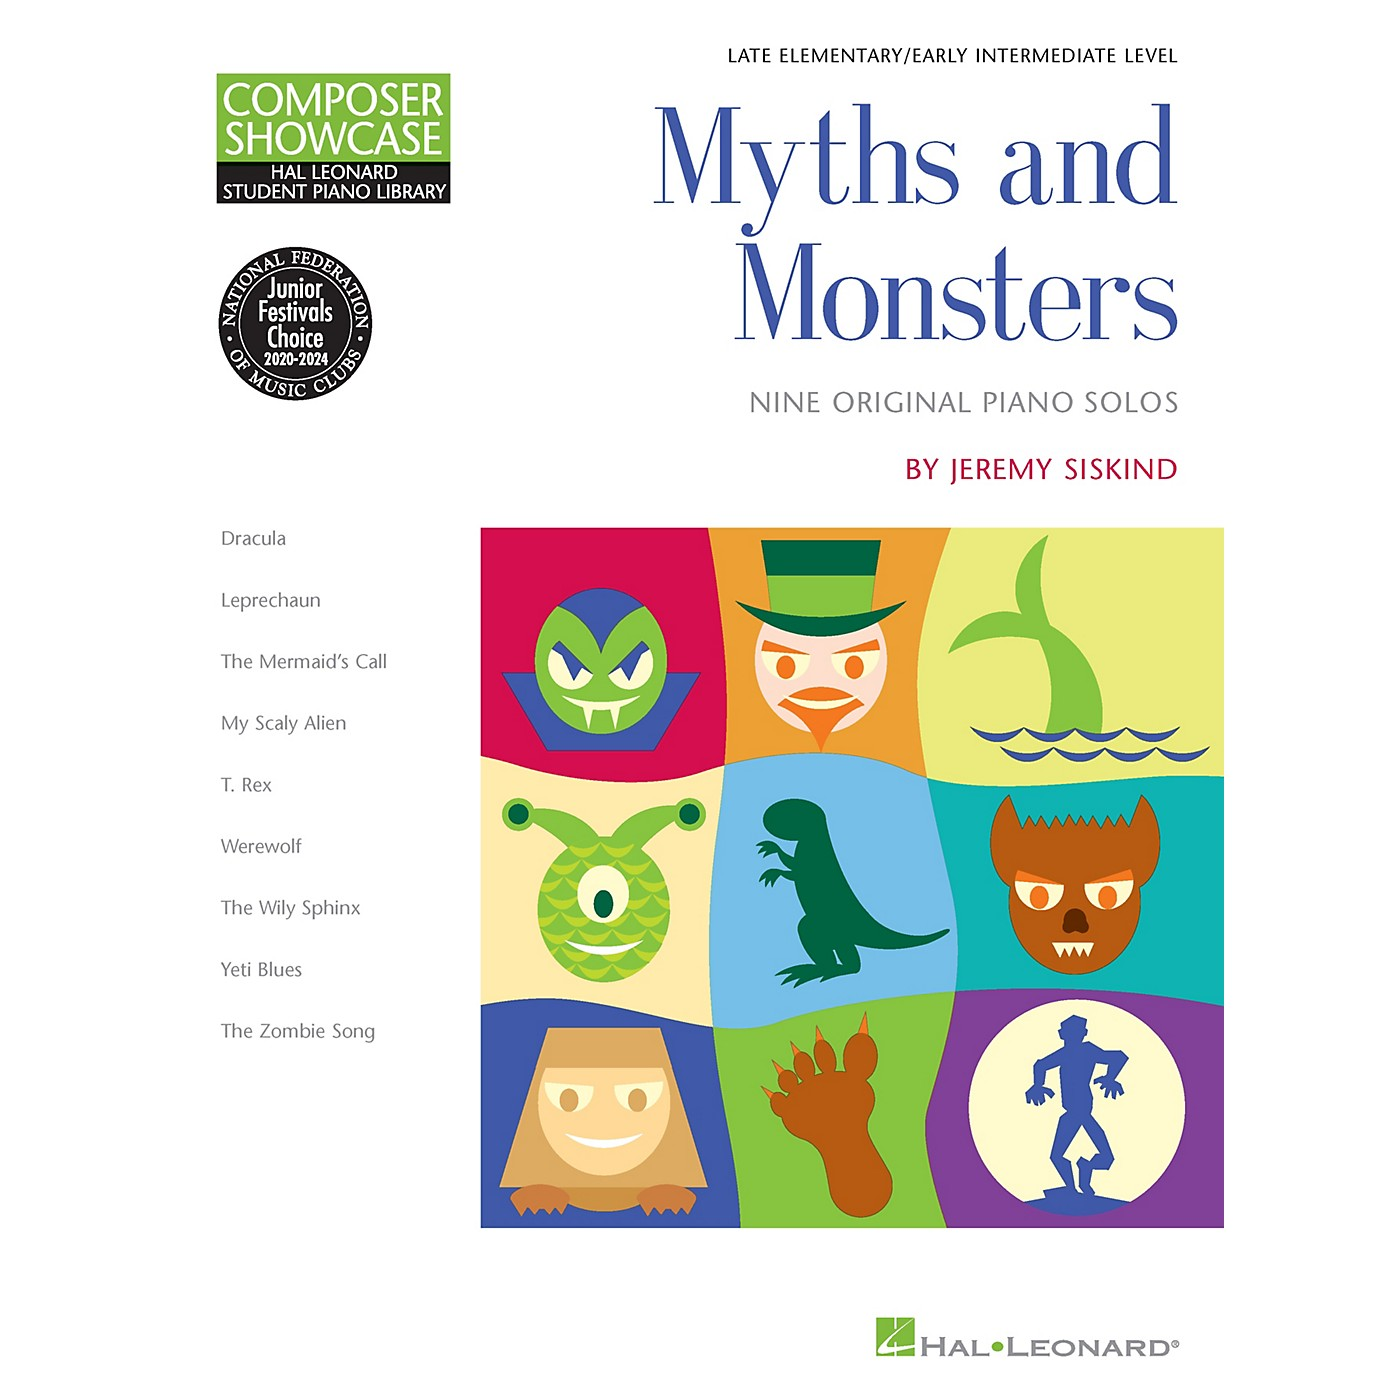 Hal Leonard Myths and Monsters Piano Library Series Book by Jeremy Siskind (Level Late Elem) thumbnail